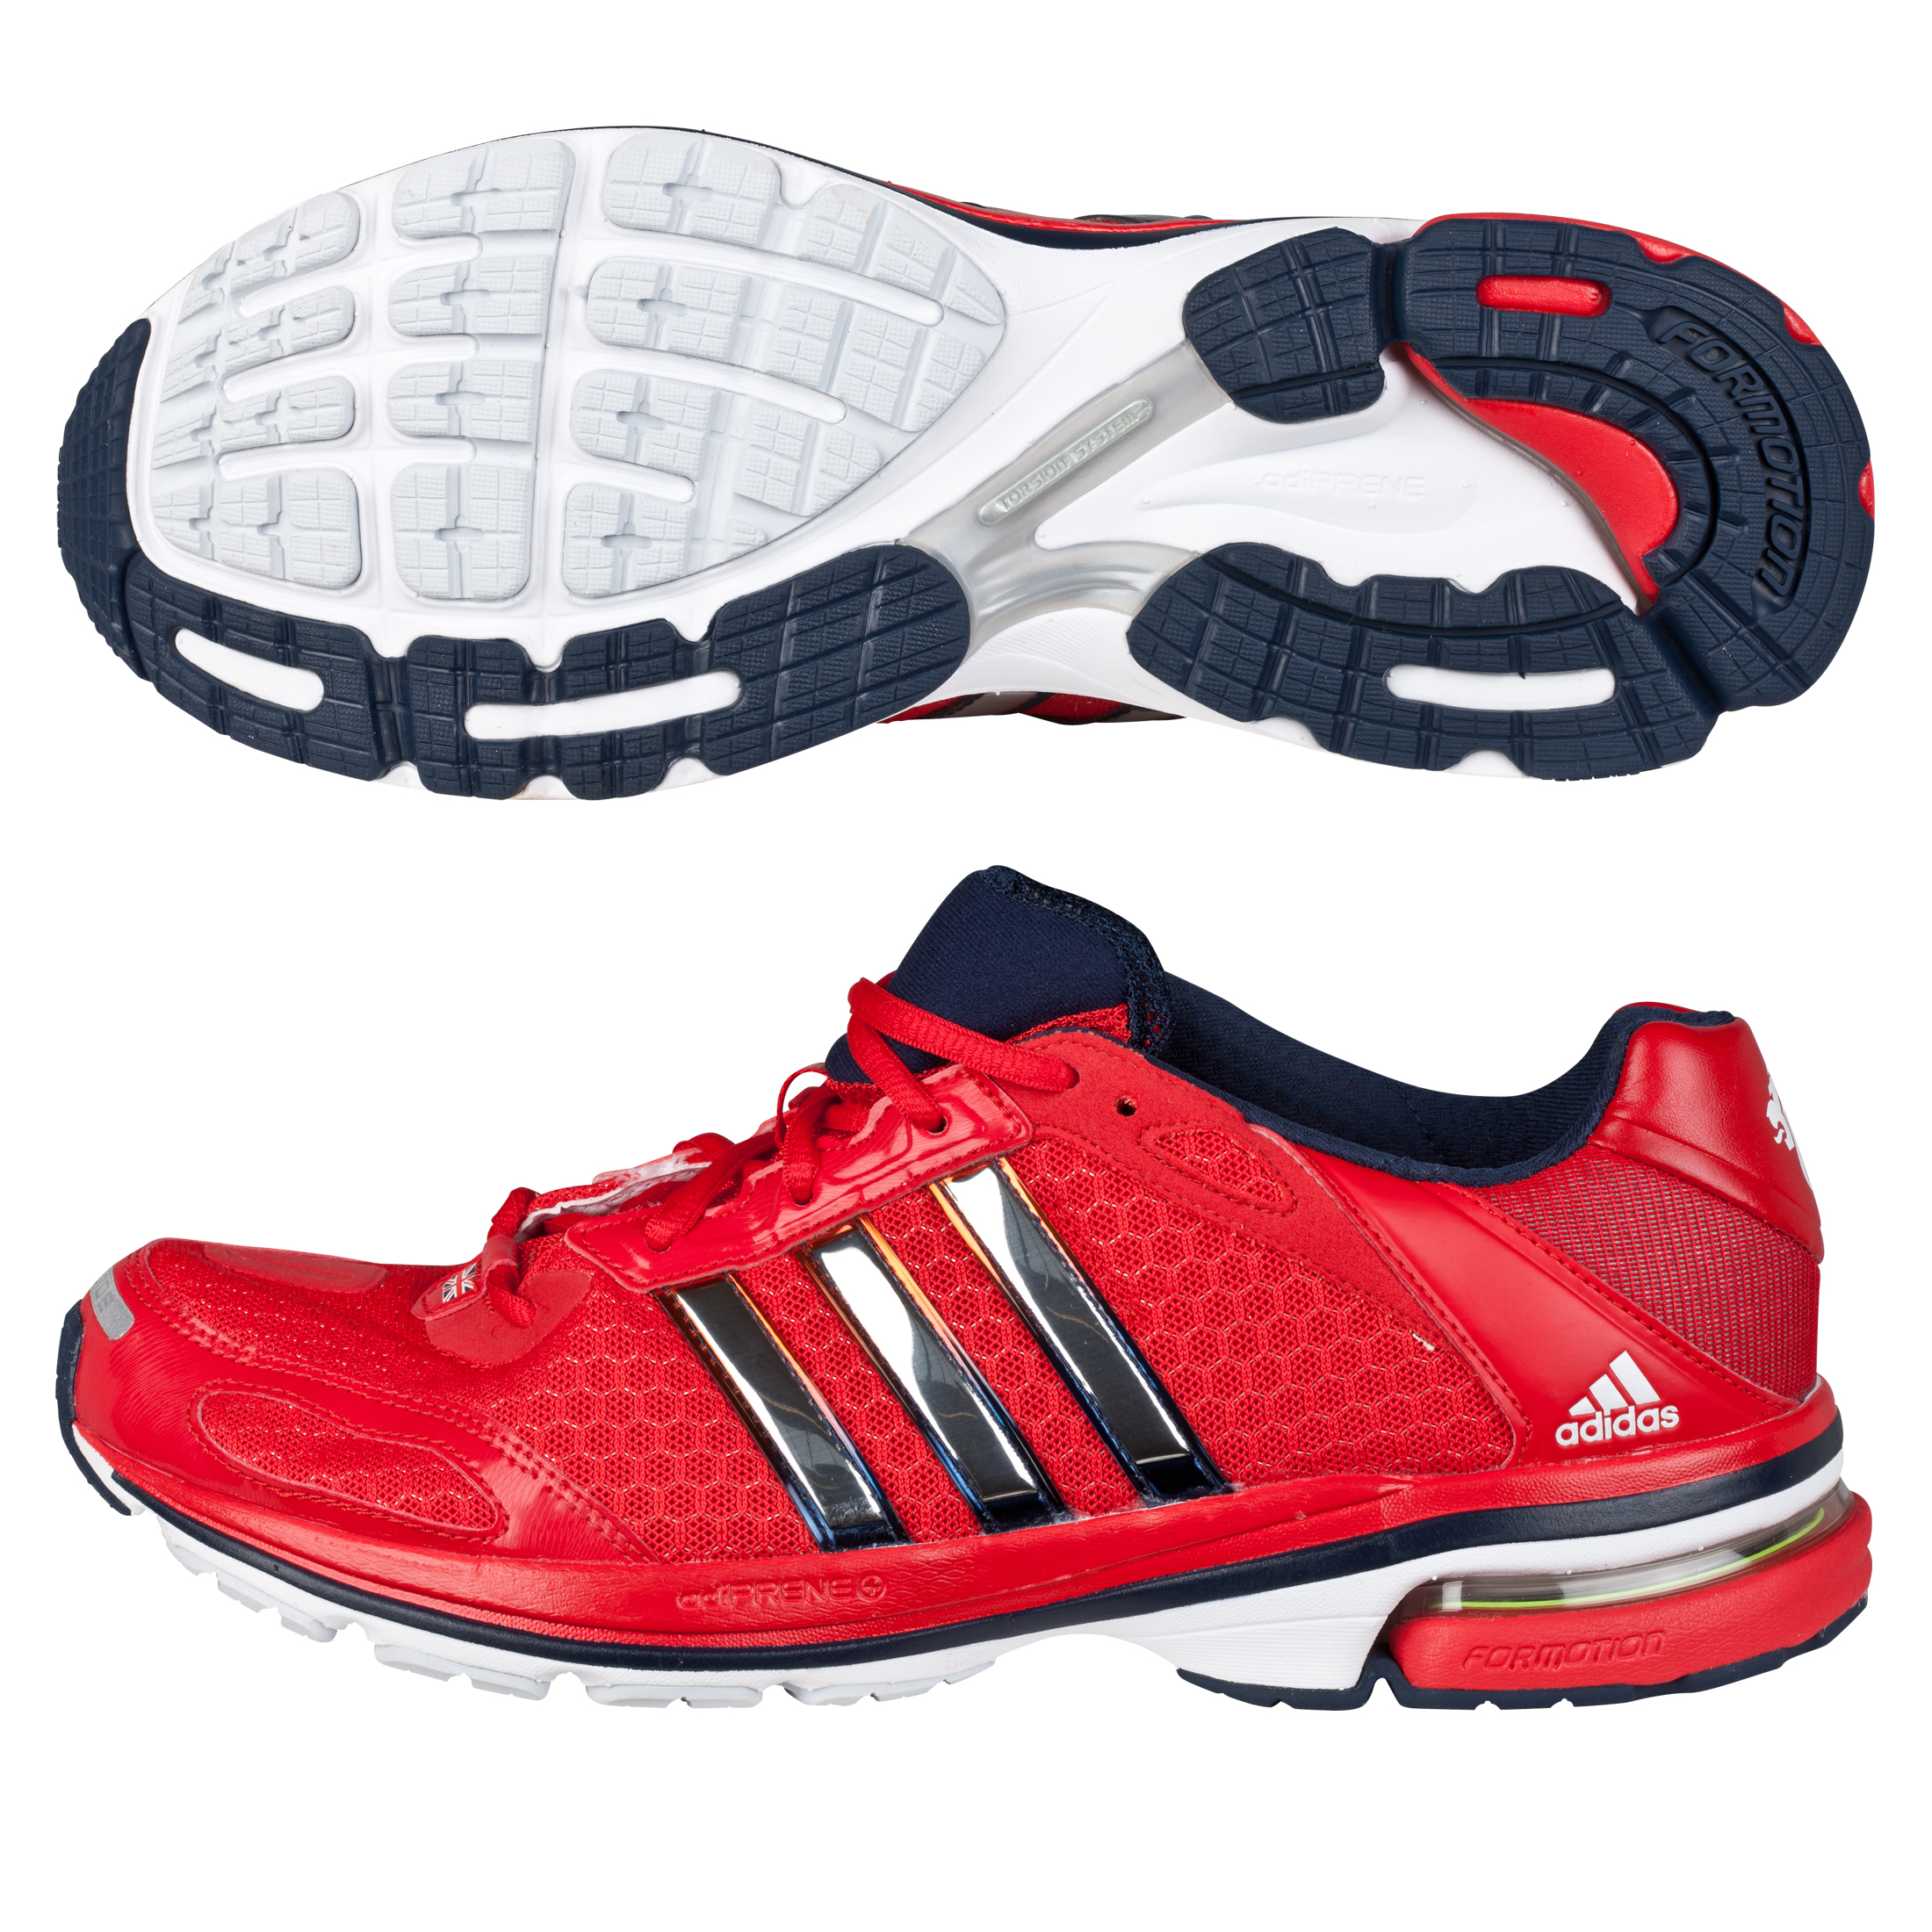 Adidas Supernova Glide 4 Trainers - Vivid Red/Metallic Silver - Womens